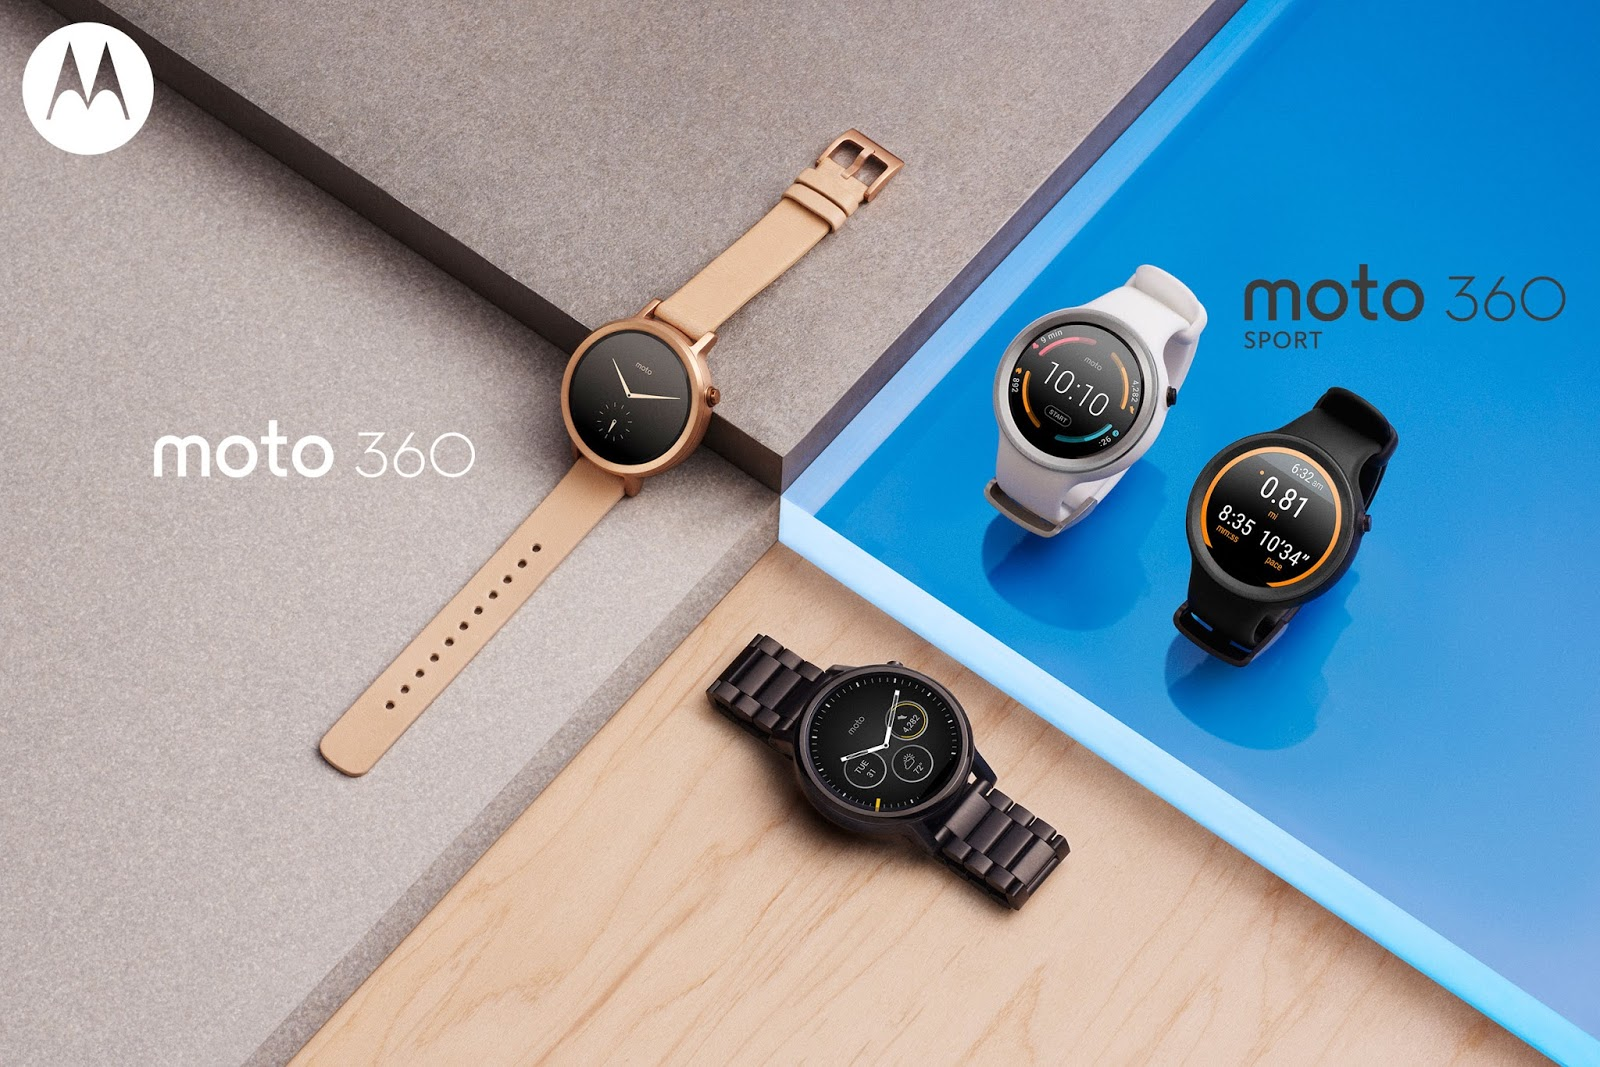 The New Moto 360 Collection: Giving you more choice with the watch that makes time for you